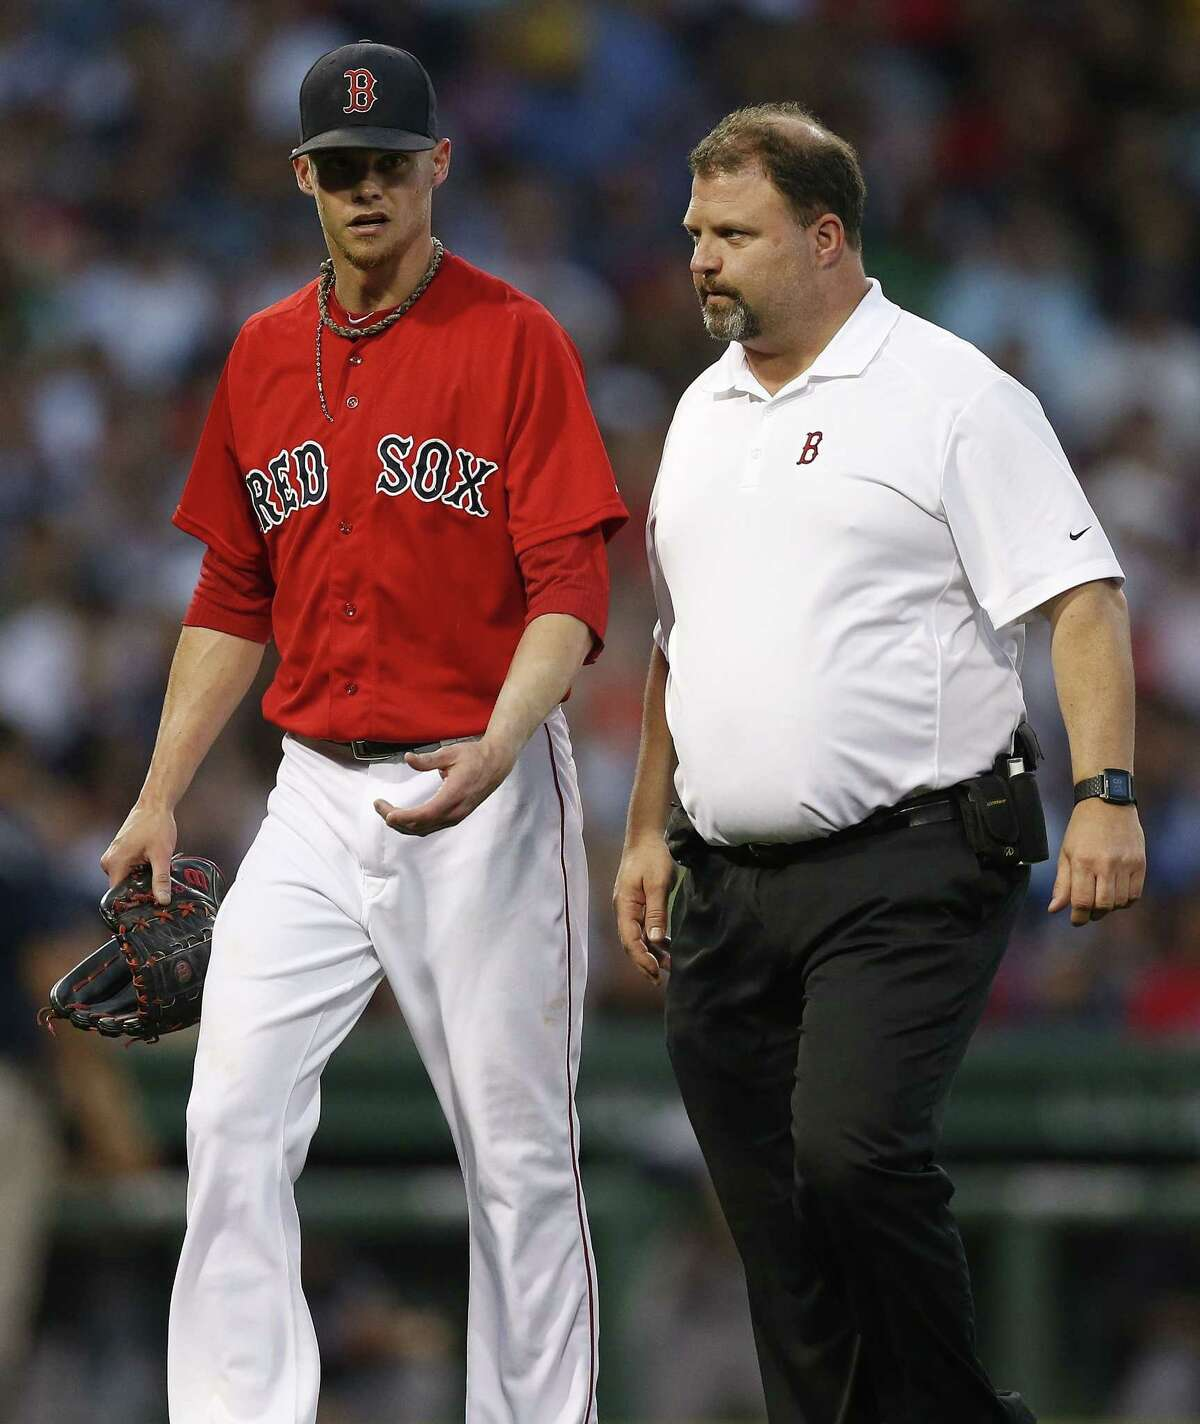 Red Sox starter Clay Buchholz leaves the game with a trainer during the fourth inning against the Yankees. Buchholz had elbow tightness